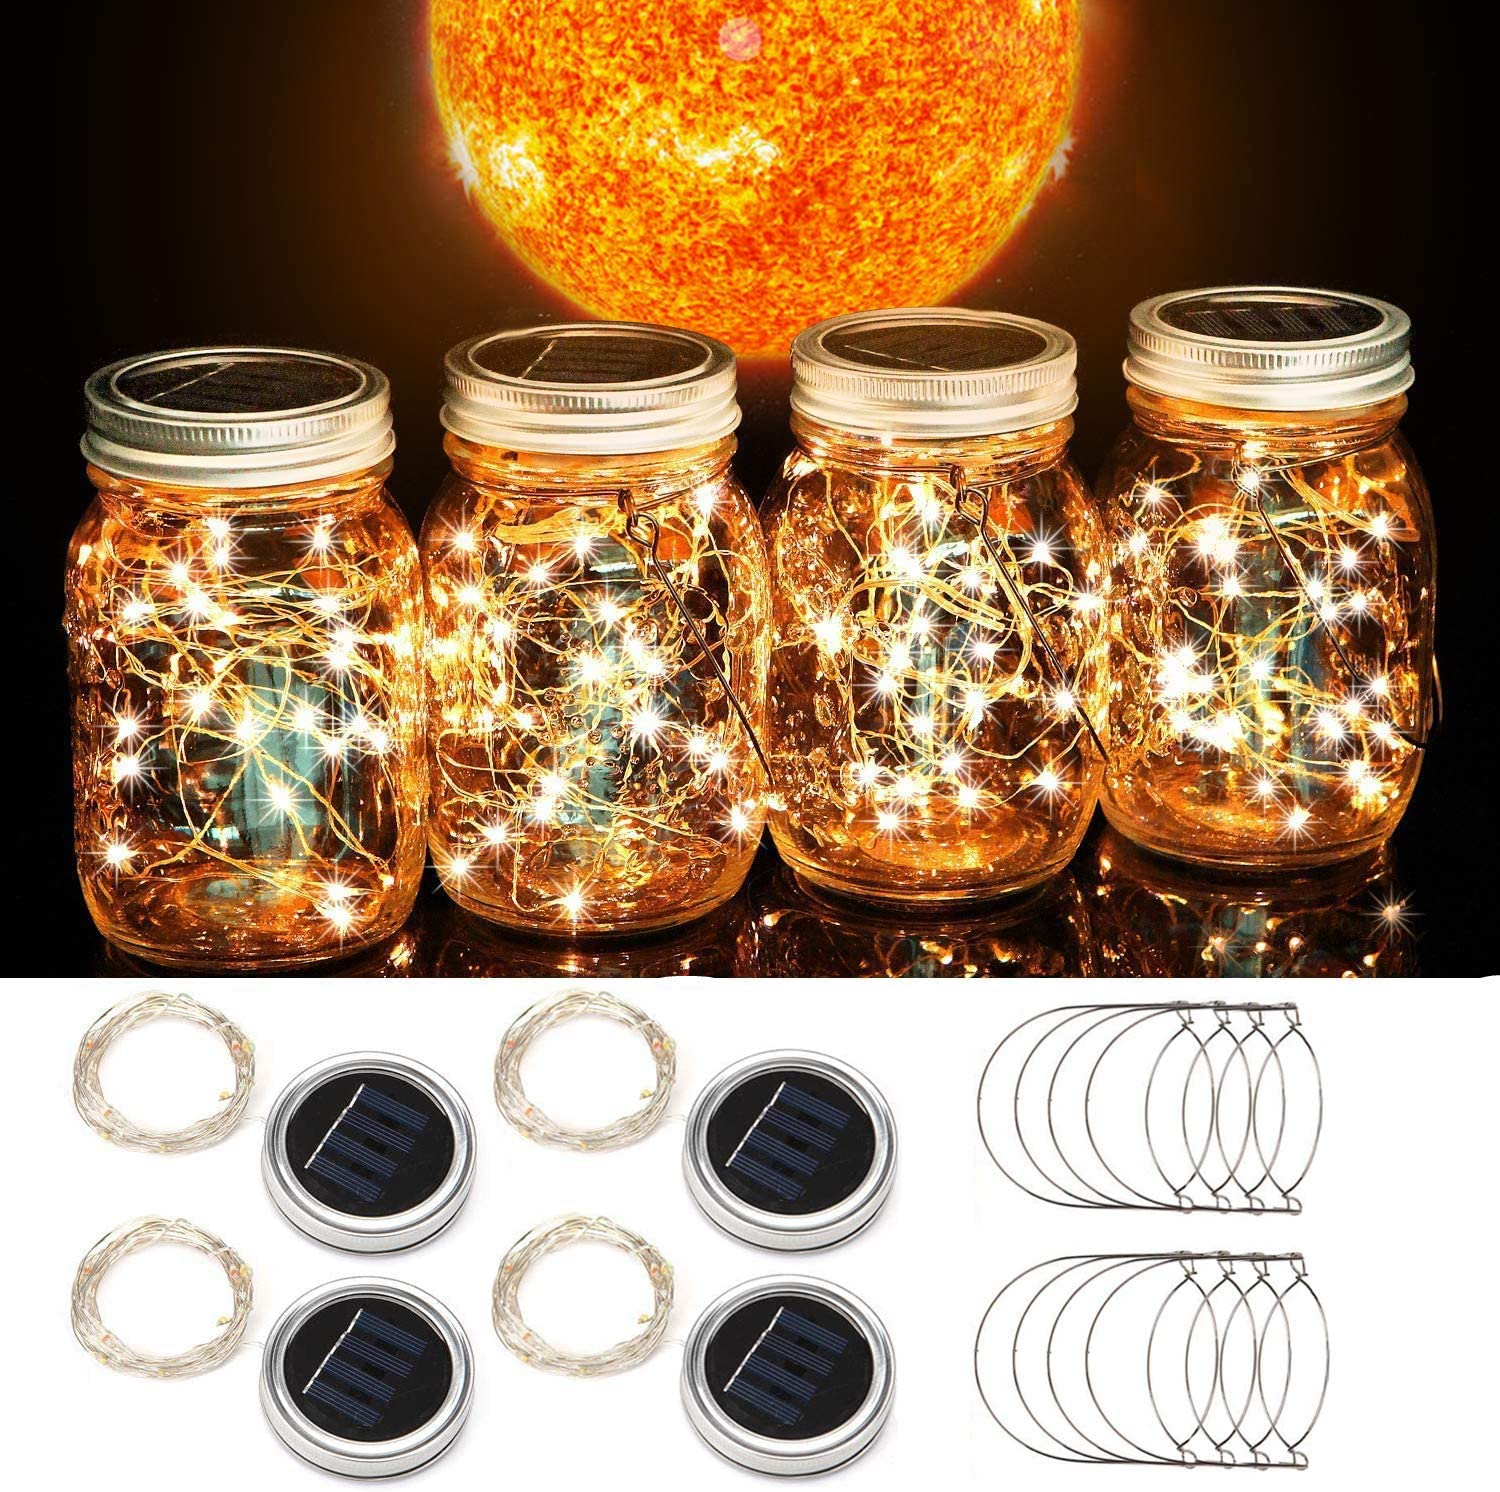 Beinhome Solar Mason Jar Lid String Lights 4 Pack 30 LED String Fairy Lights Including 4 Hangers (No Jars),for Mason Jar Garden Patio Wedding Lantern Decorations